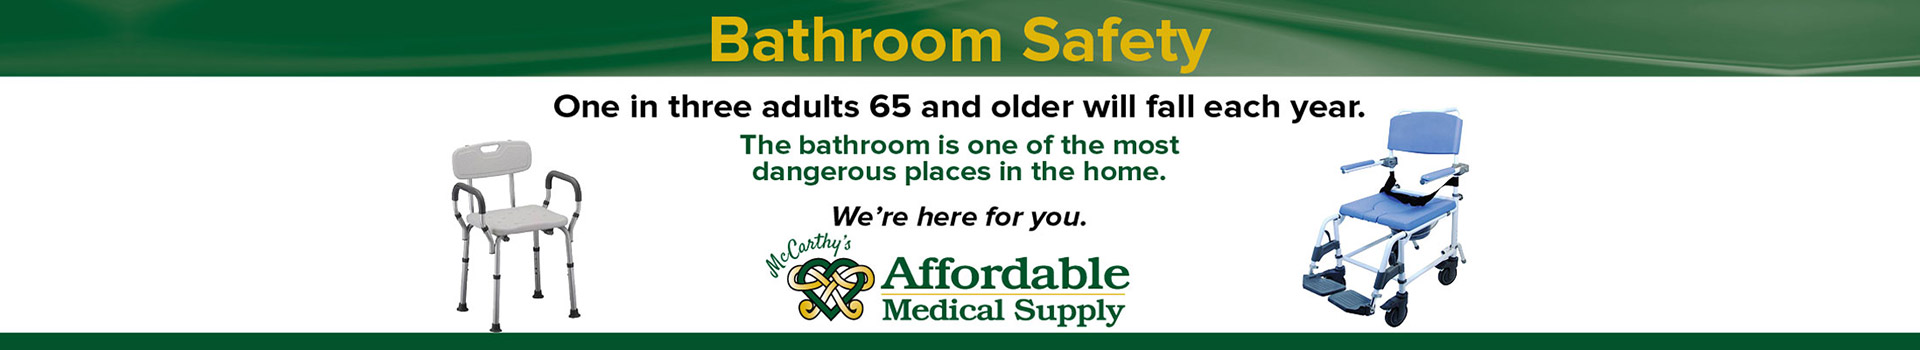 bathroom-safety-1-banner